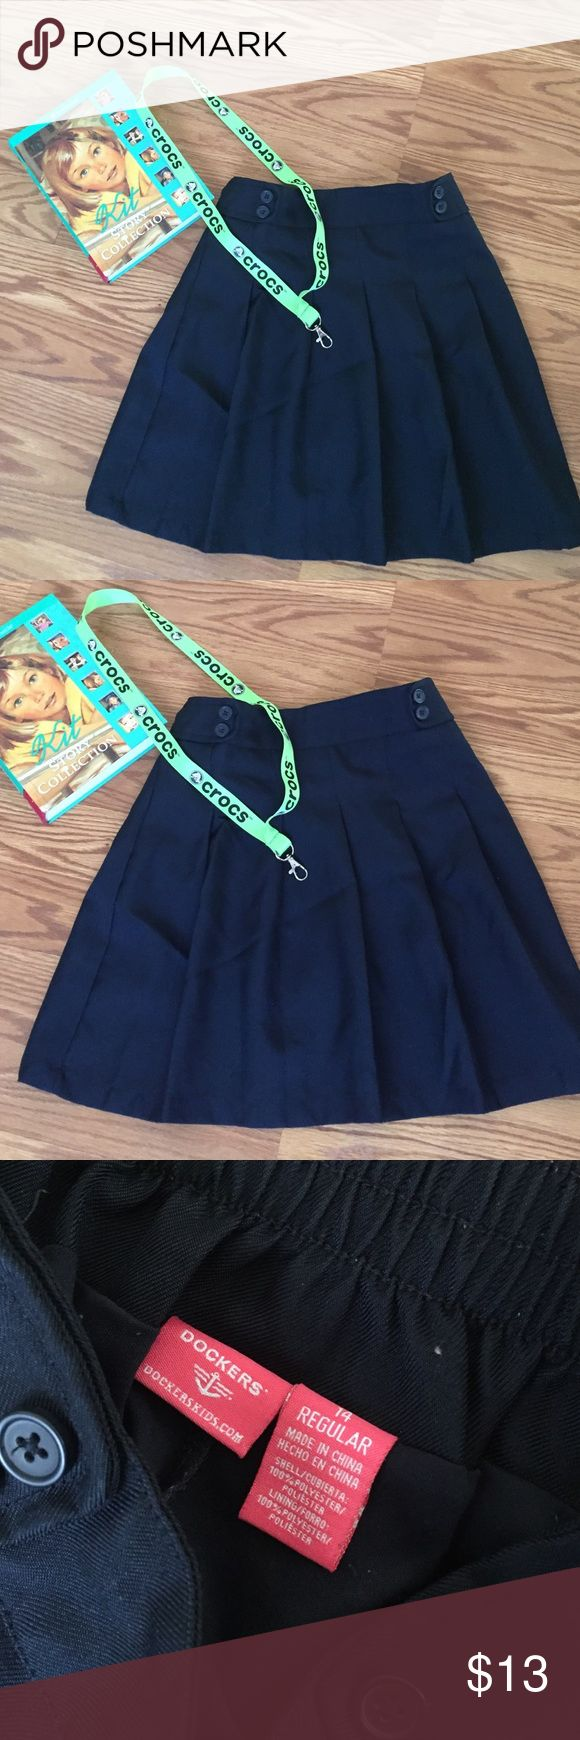 ROYAL BLUE SCHOOL GIRLS SKIRT UNIFORM💕❤️ ADORABLE cute girls skirts size 14 regular barely worn all great condition ❤️ Dockers Bottoms Skirts